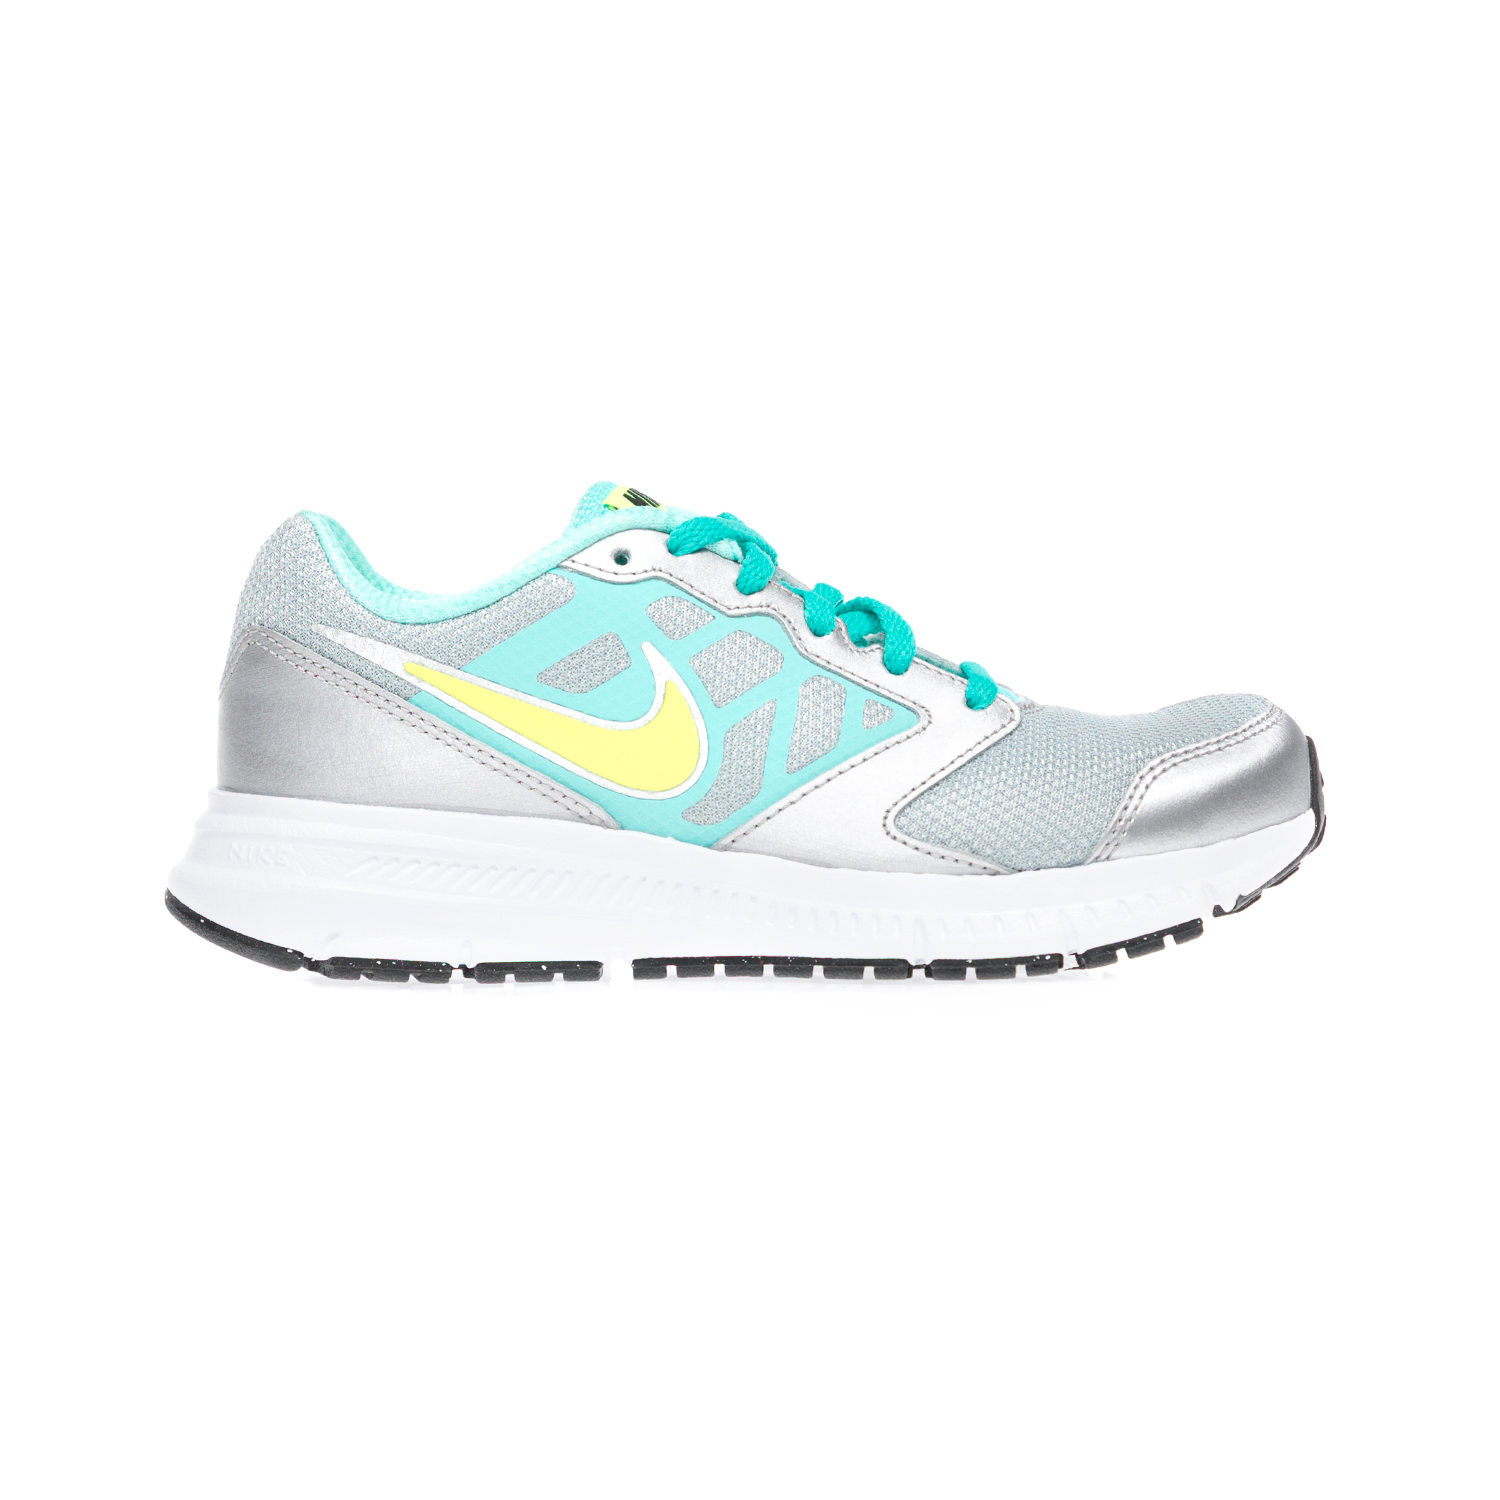 NIKE – Παδικά παπούτσια NIKE DOWNSHIFTER 6 (GS/PS) γκρι-ασημί